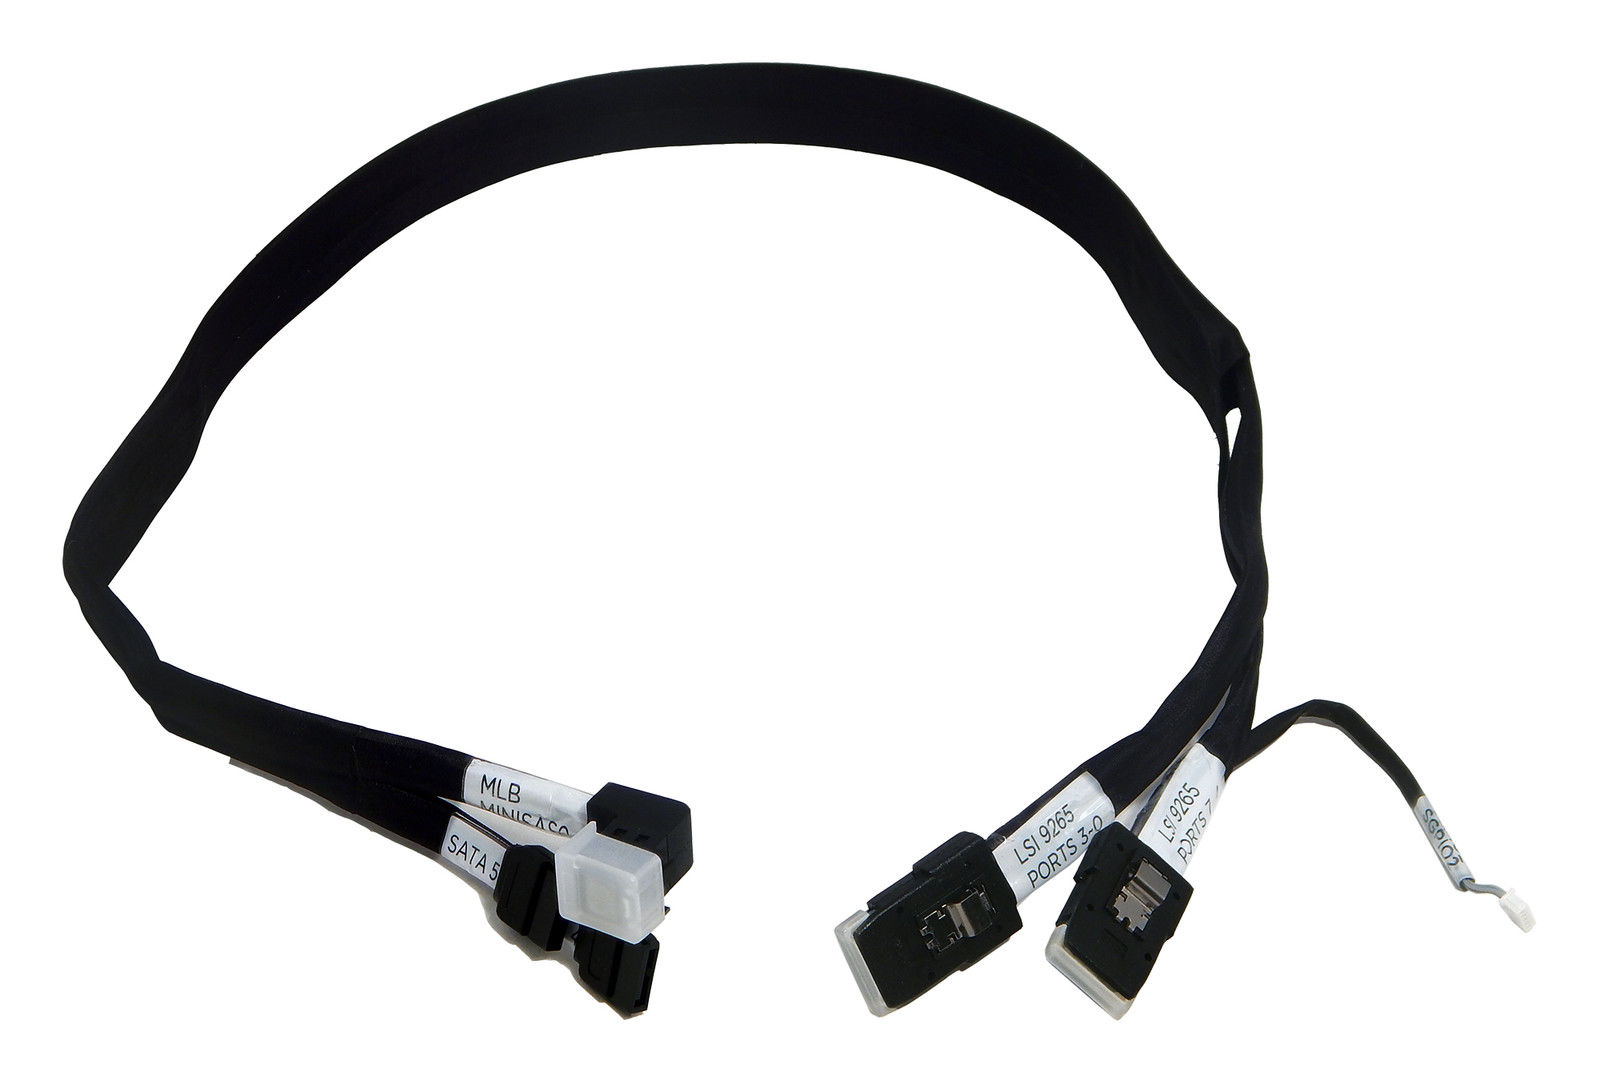 NEW Dell YTHX7 LSI9265 1U SAS Cable